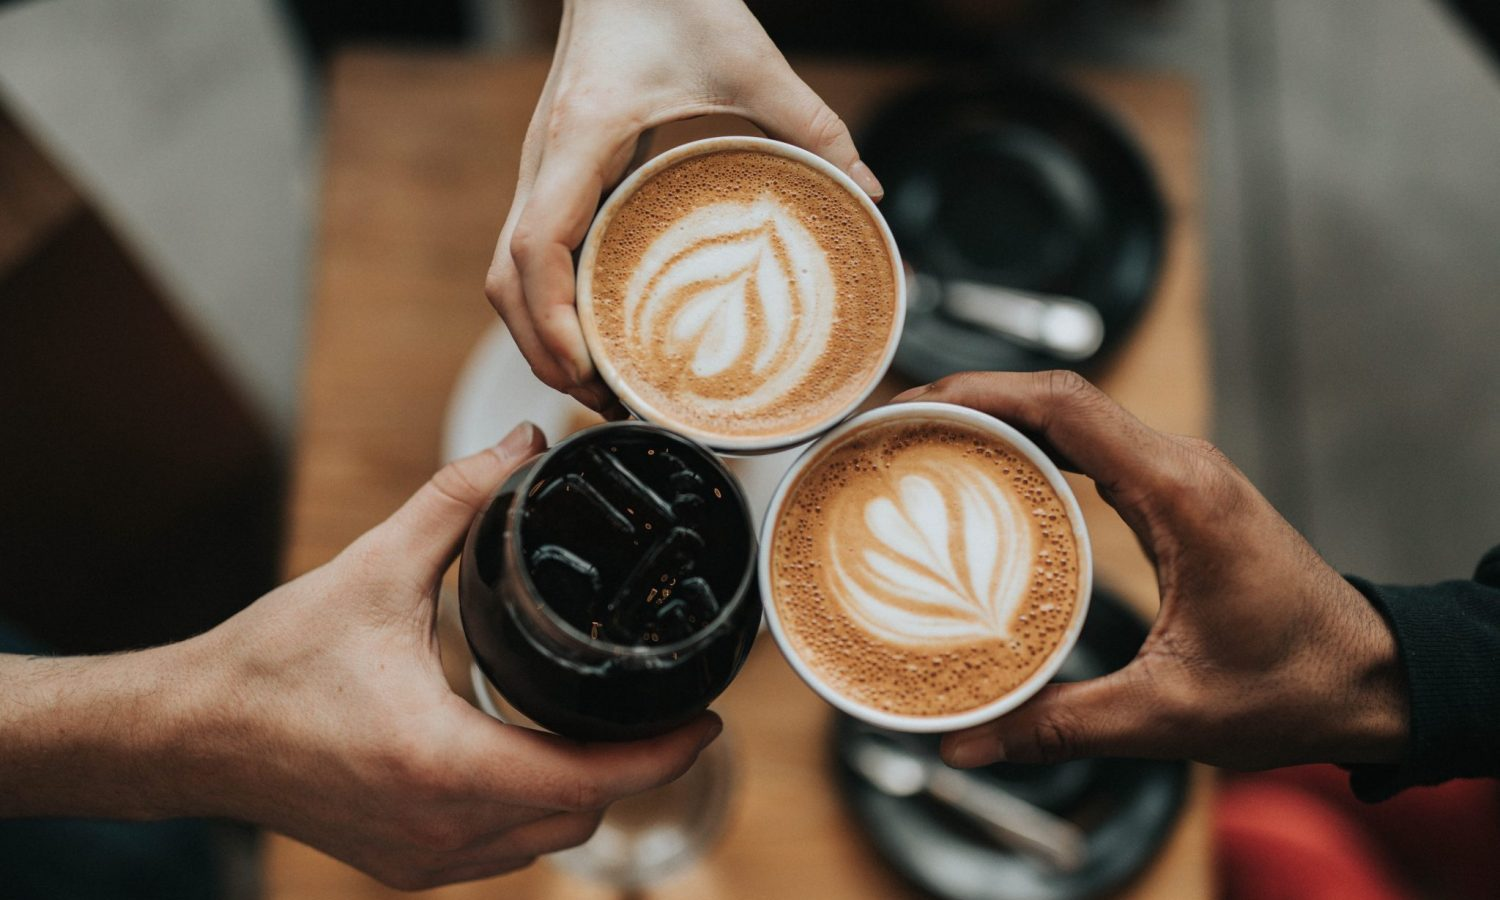 Timing Matters With Coffee — Here's When You Should Drink It For More Productivity